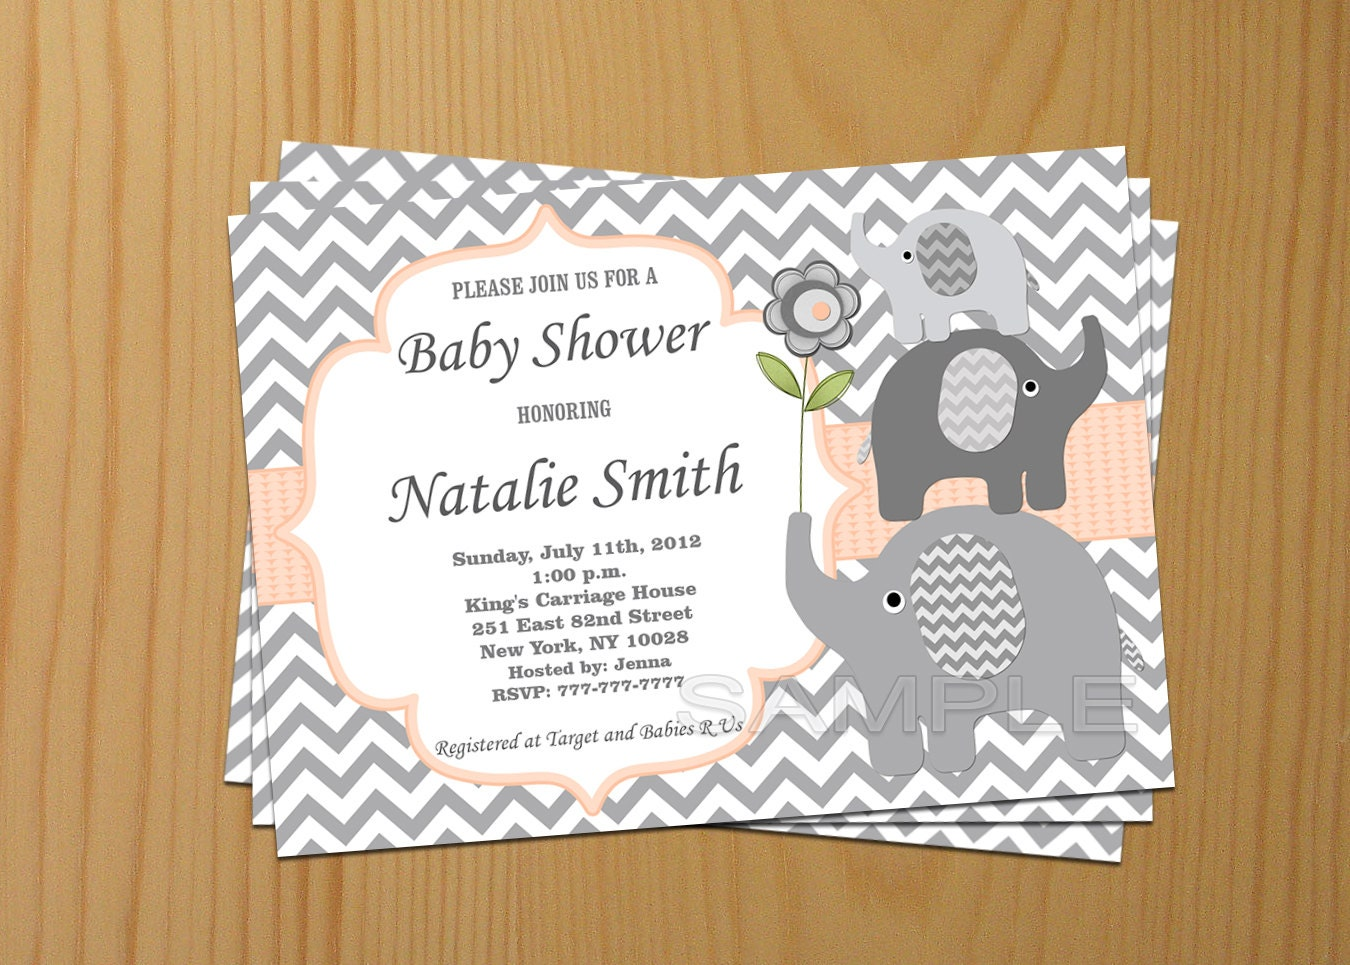 Wonderful Best Resumes And Templates For Your Business   Ggec.co Intended For Free Downloadable Baby Shower Invitations Templates